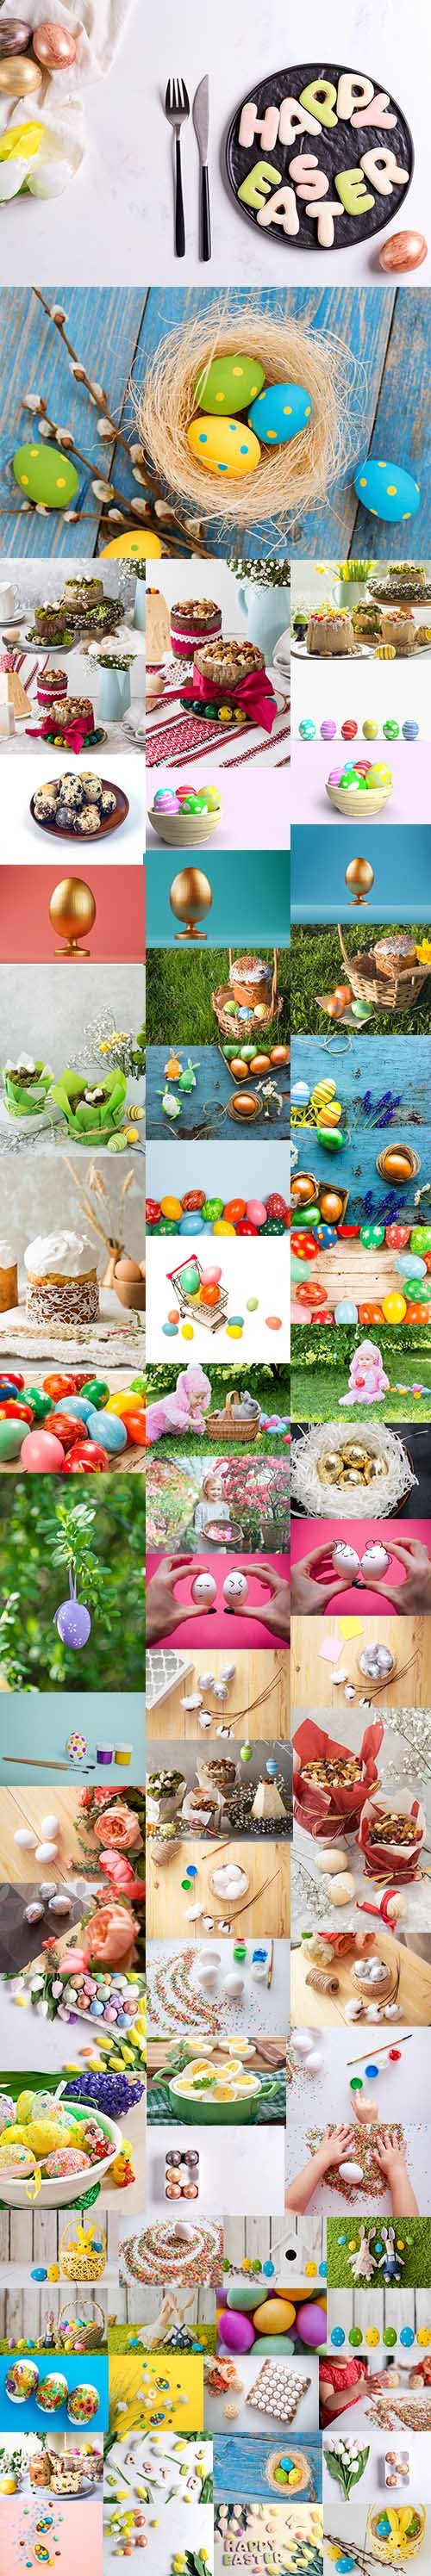 Happy Easter Holiday Photo Bundle - Premium UHQ JPEG